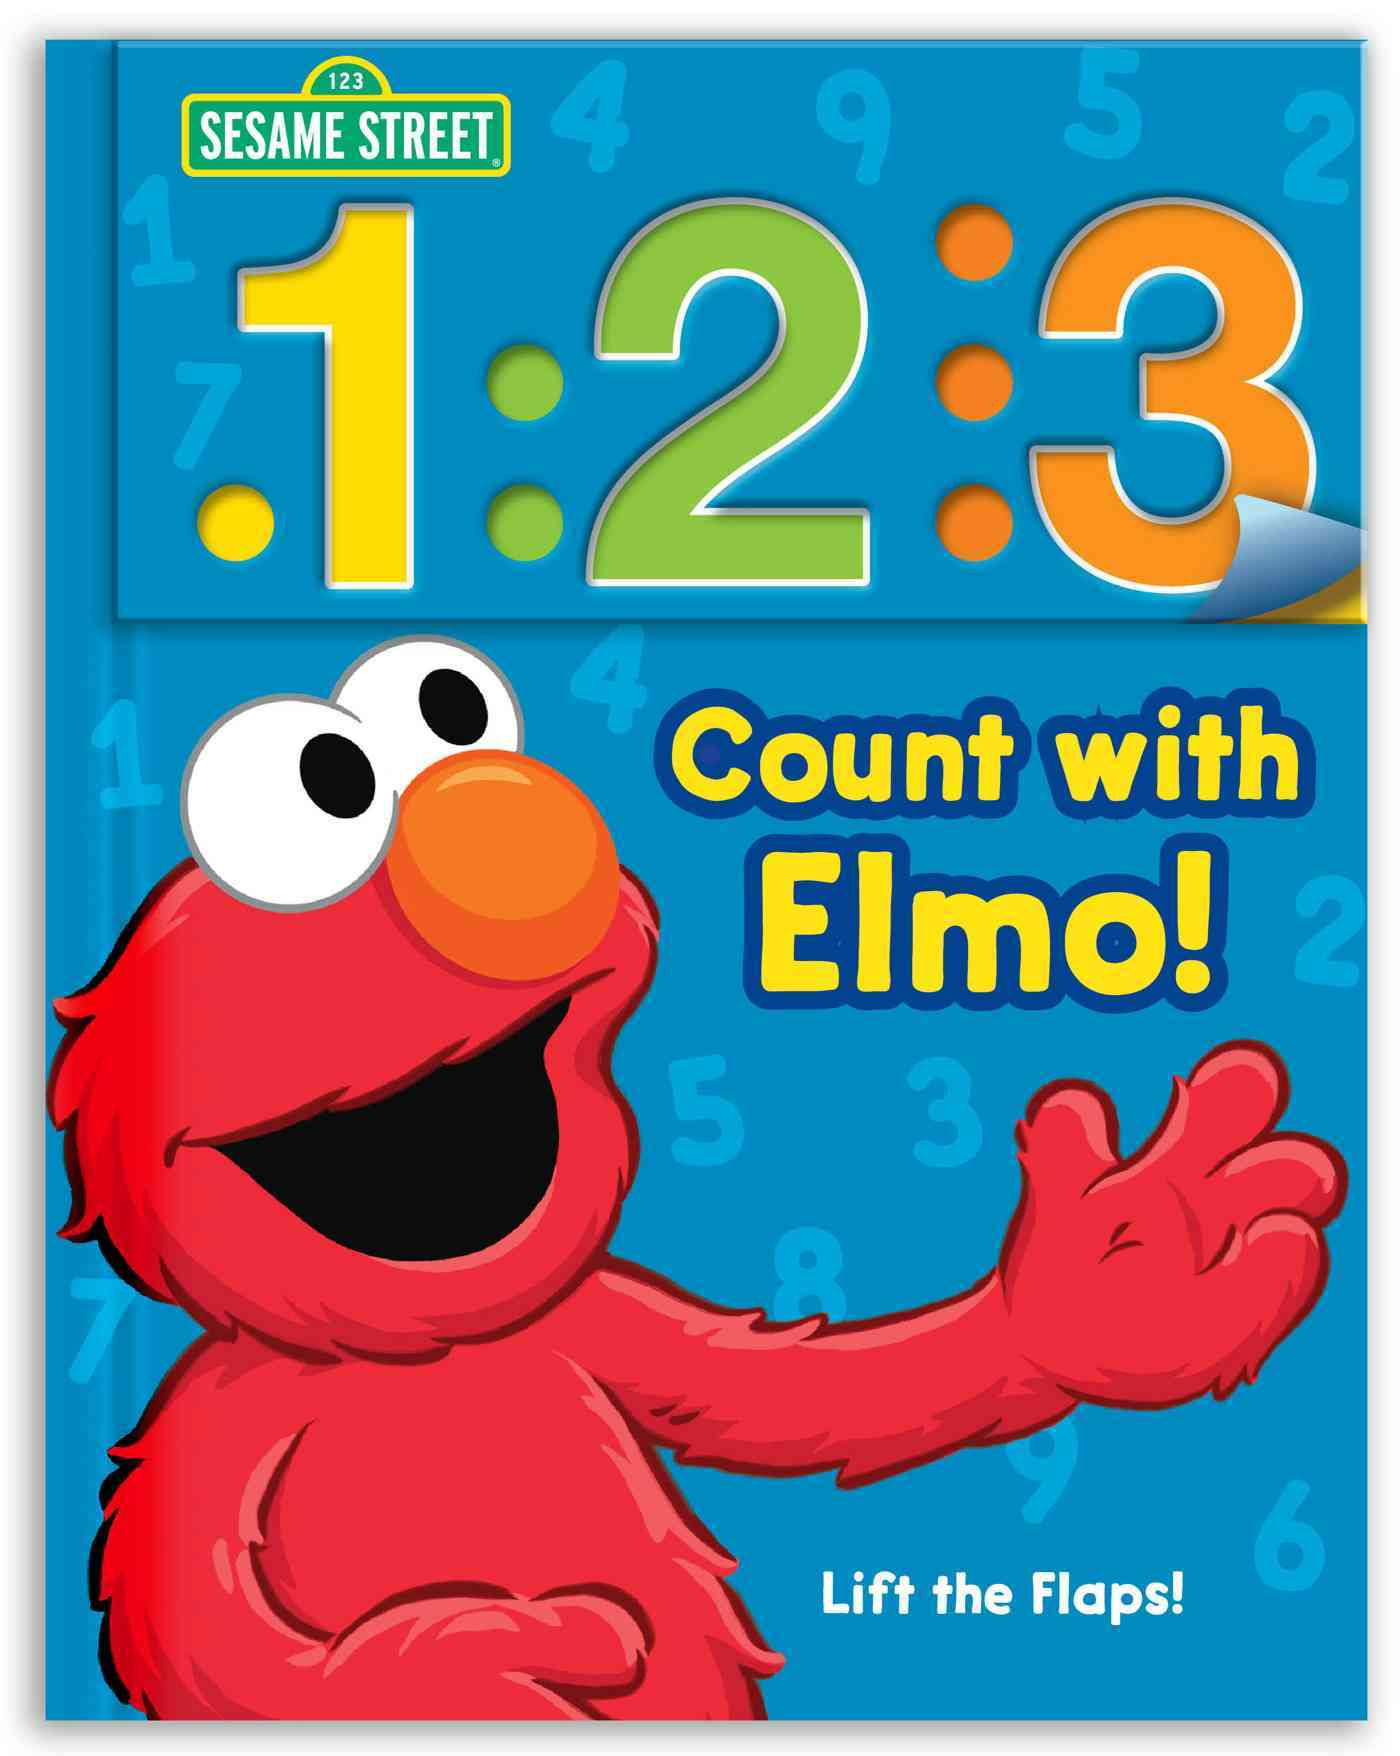 Sesame Street Count With Elmo! By Sesame Workshop (CRT)